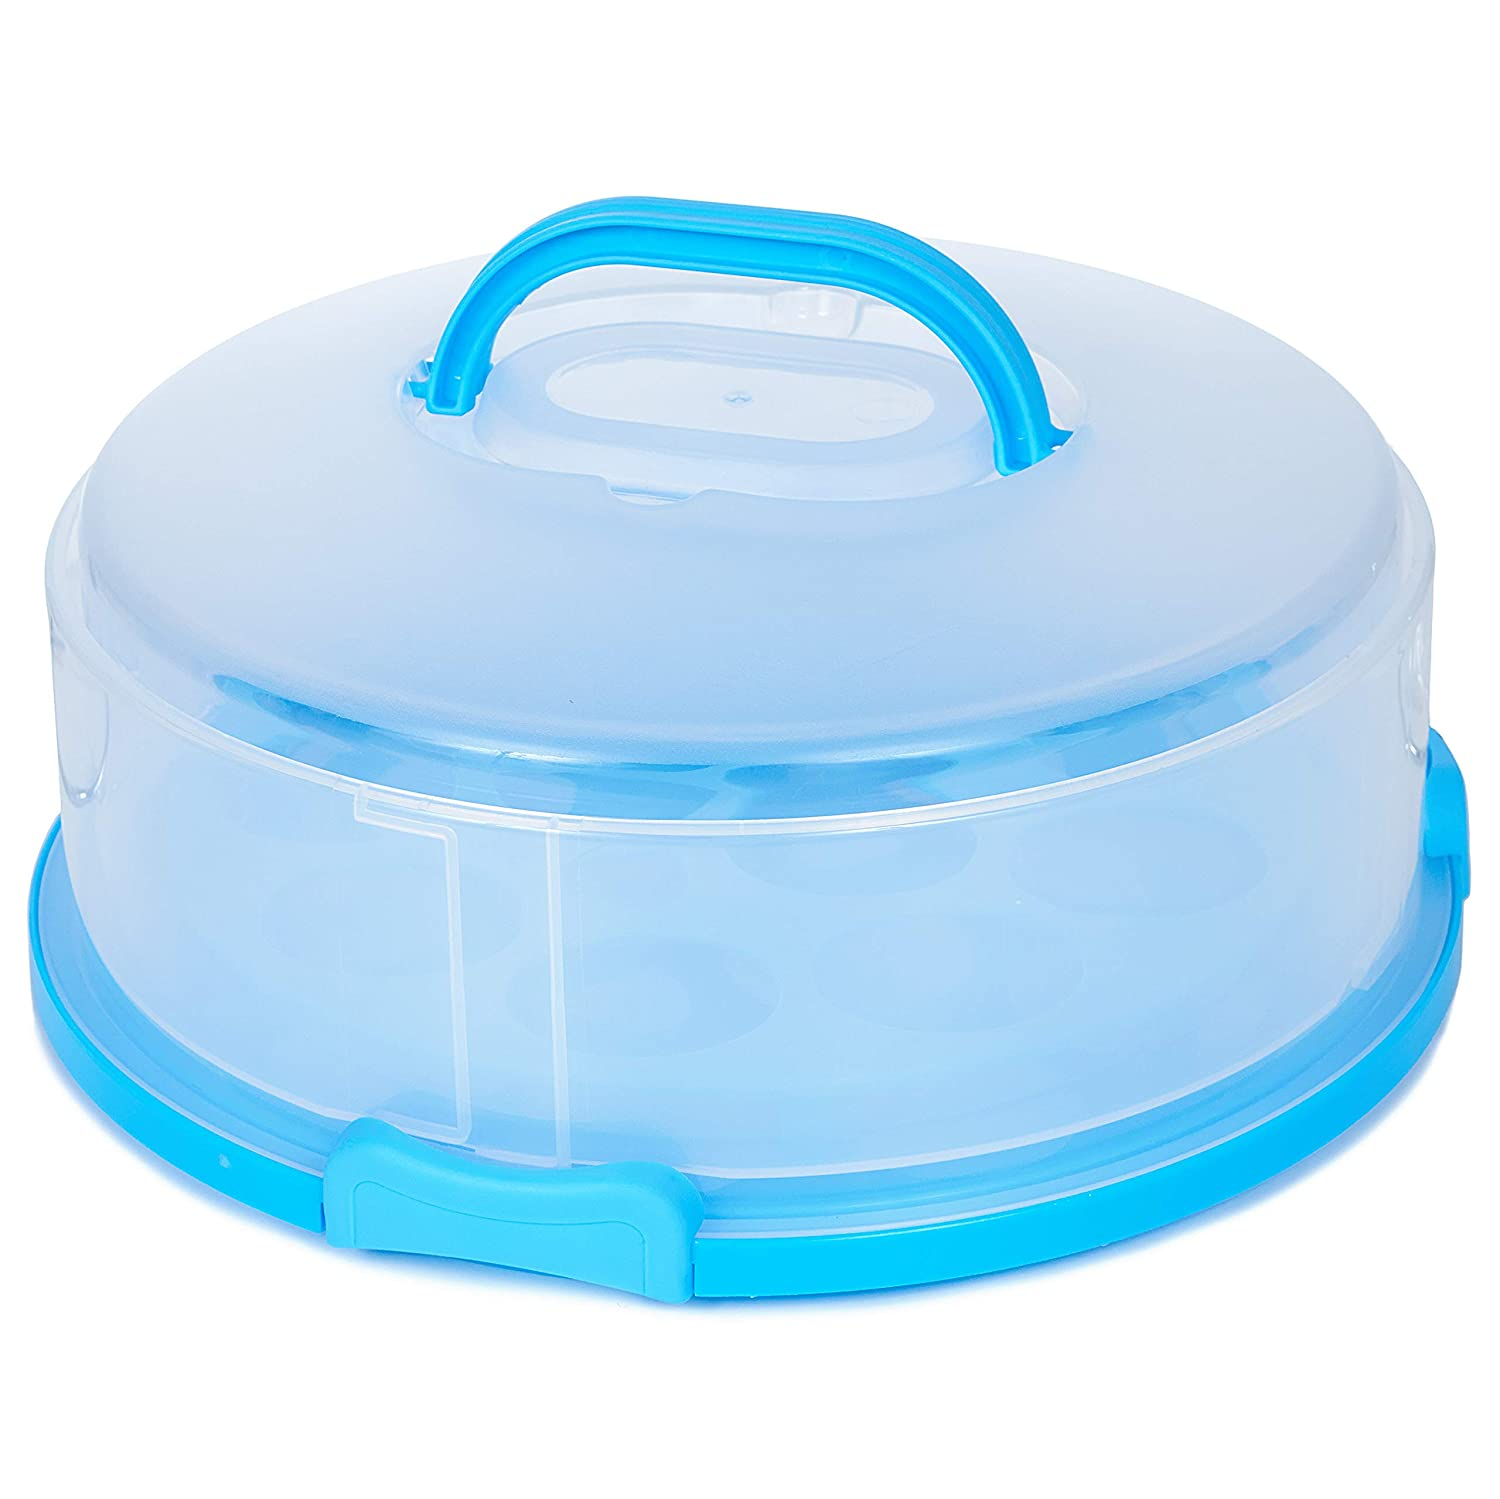 Plastic Cake Carrier Cover Container + Cupcake Holder – Expands & Collapses to Fit 7.5 Inch Tall Cakes – Extra Large Round BPA-Free Travel Platter for Bakers, Chefs, Caterers   12-Inch